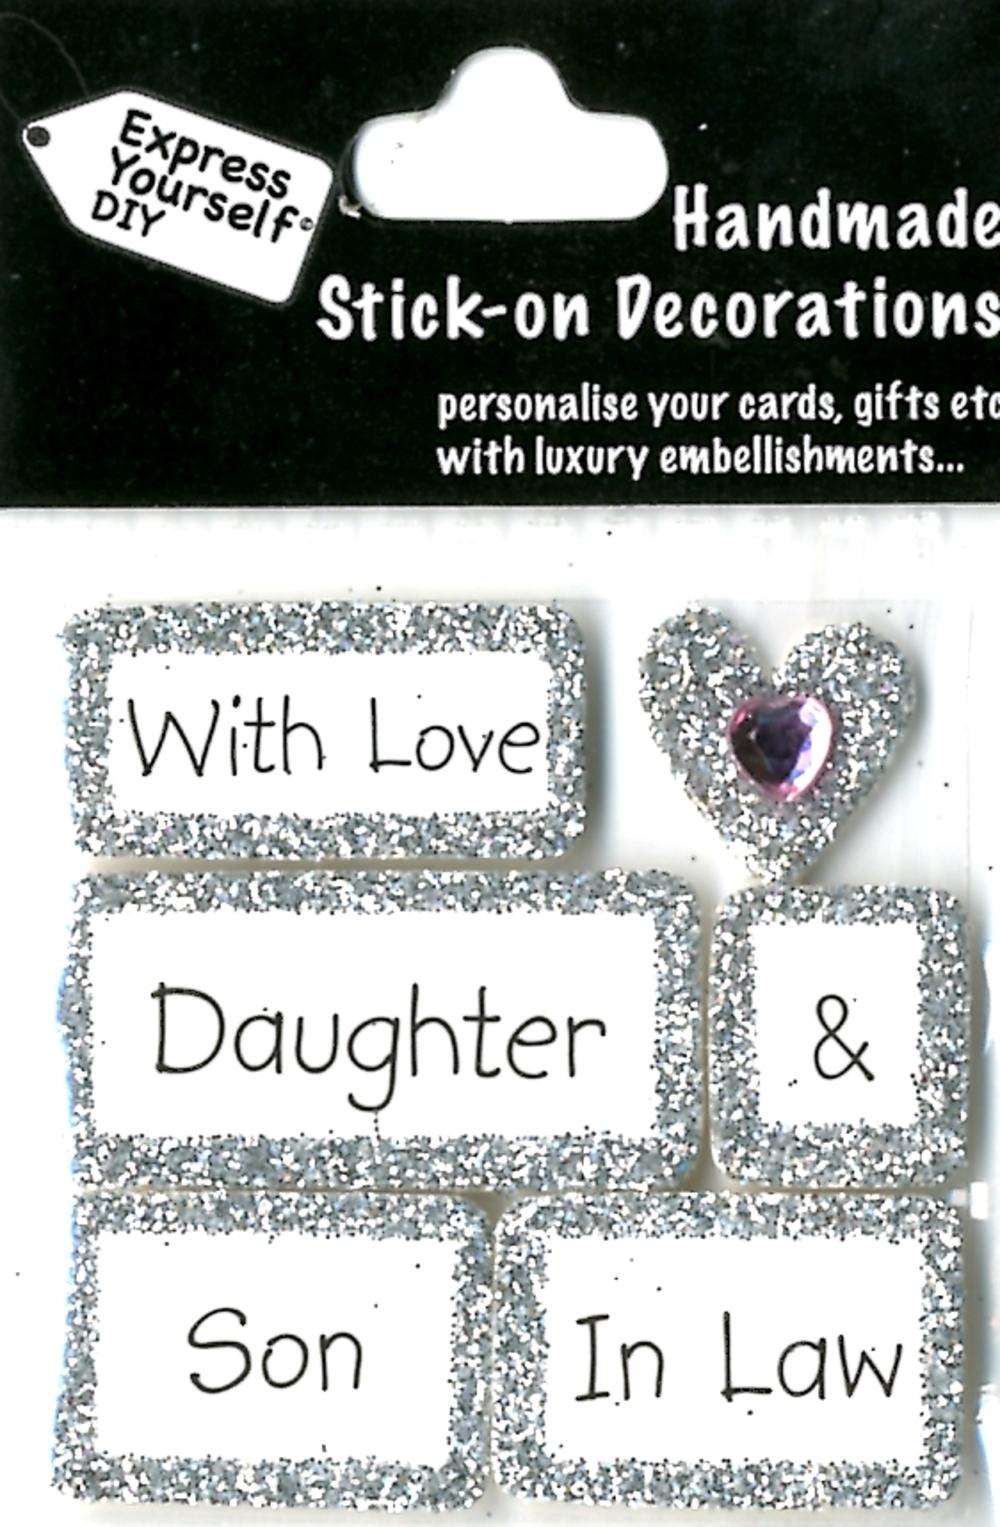 With Love Daughter & Son-in-law DIY Greeting Card Toppers